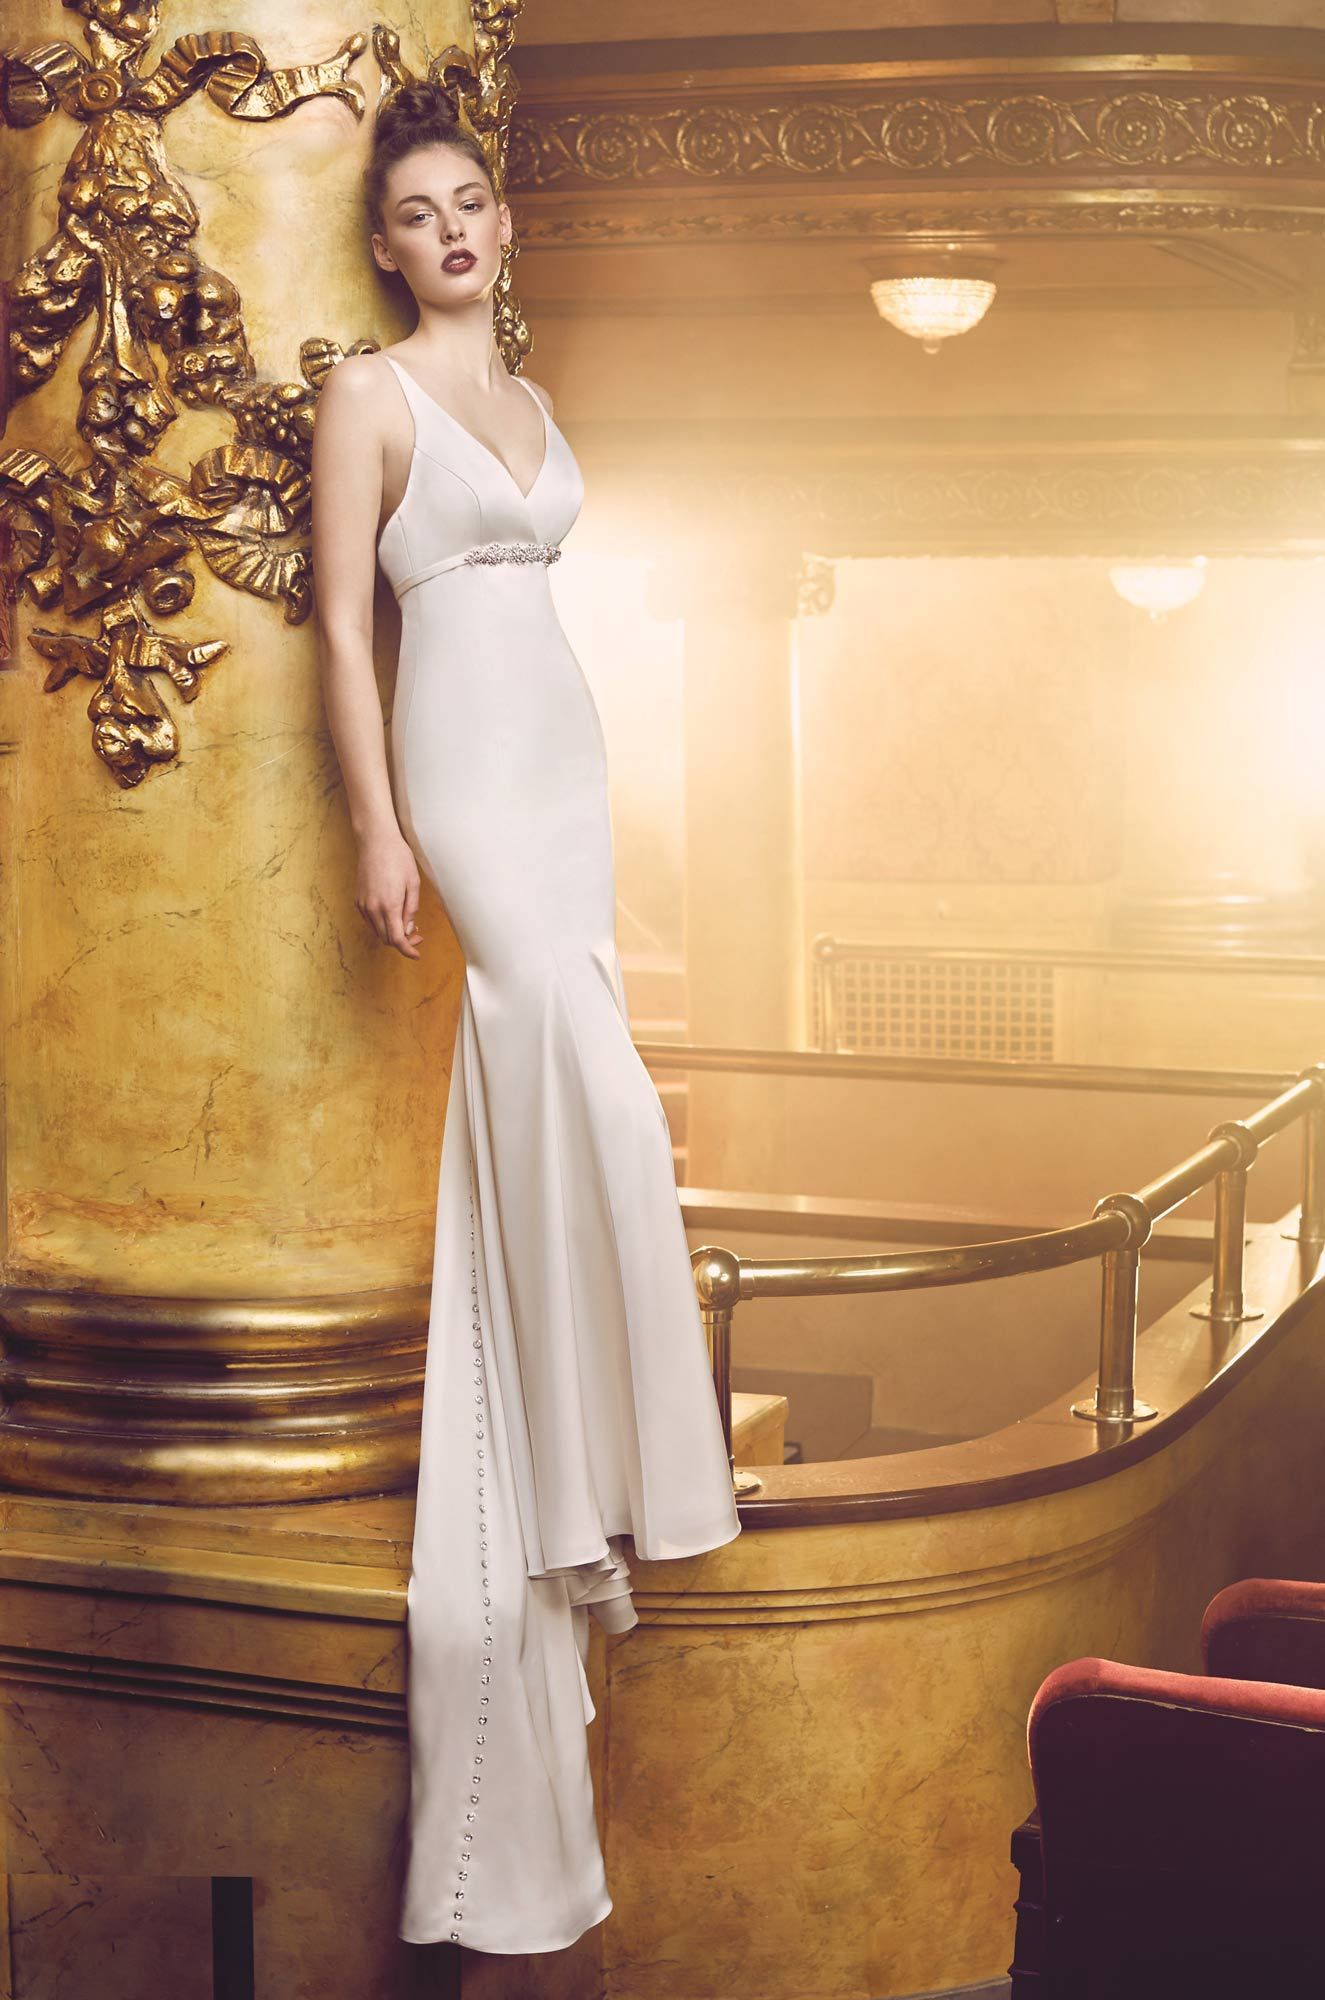 Empire cut satin wedding dress style paloma blanca satin